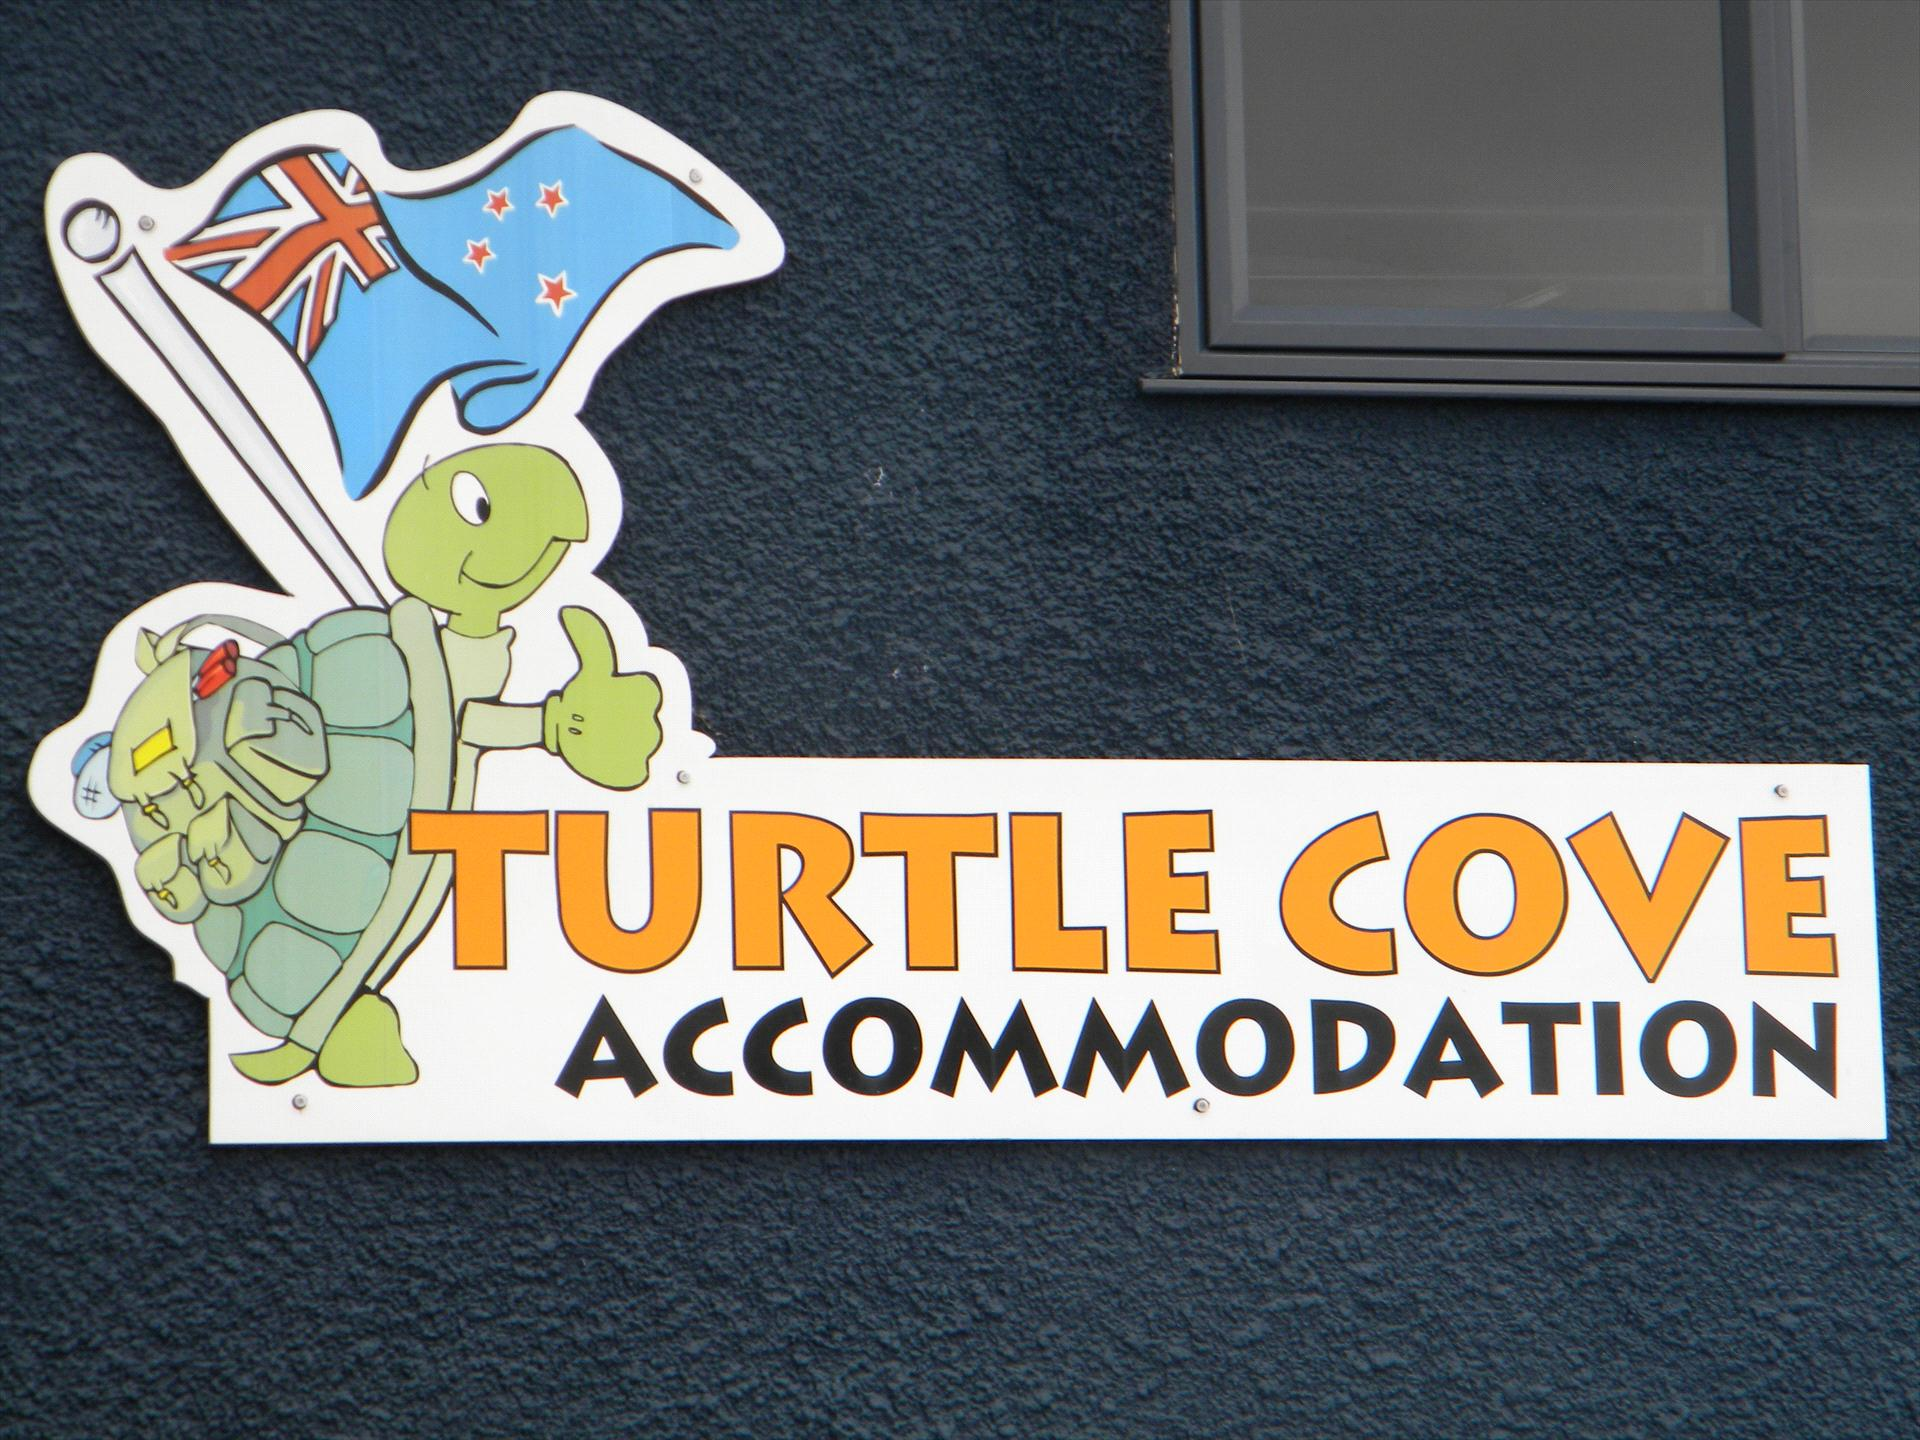 Turtle Cove Accommodation